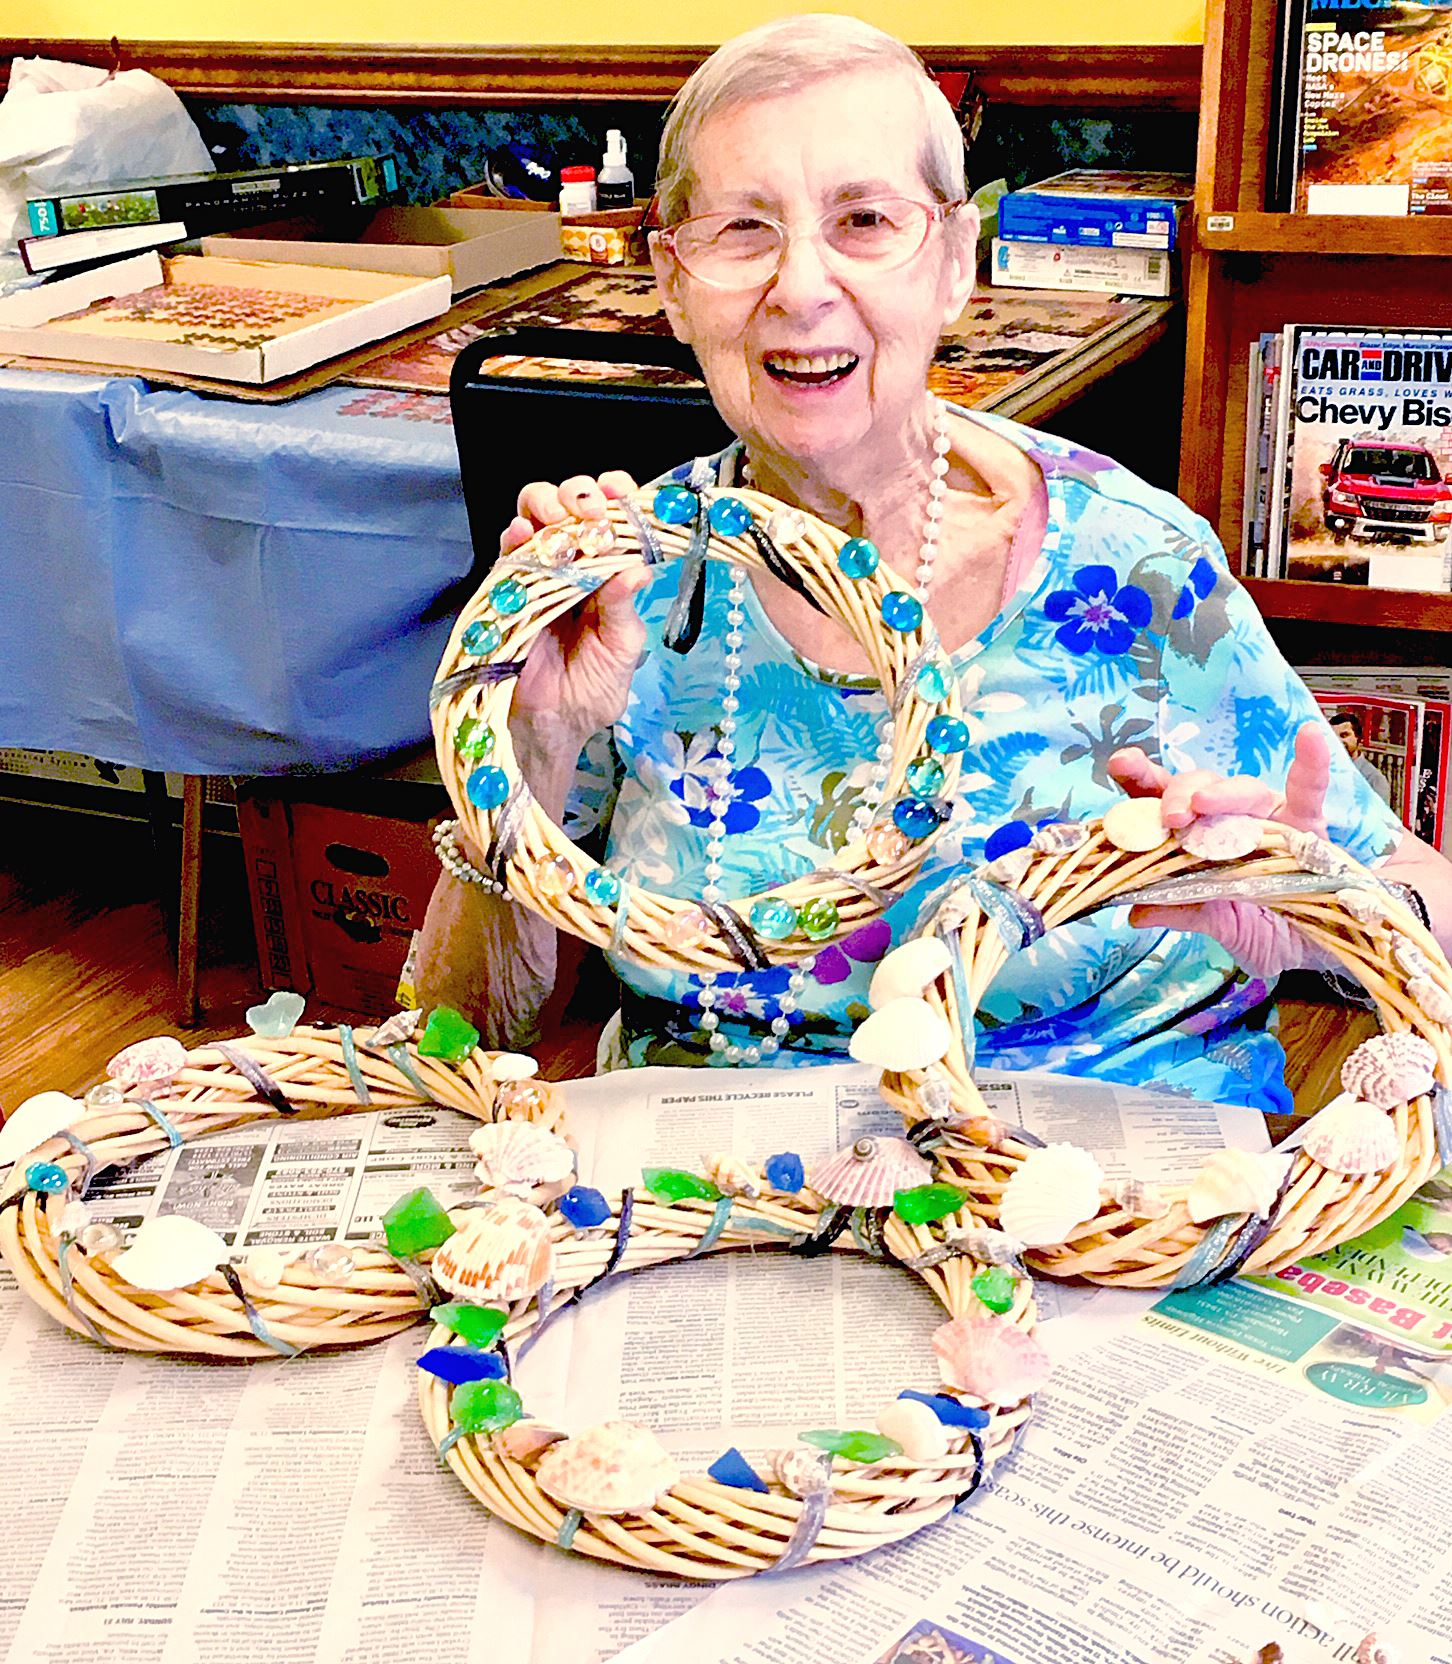 Honesdale Senior Center attendee NancyDavis poses with the decorative summer wreath made by the free